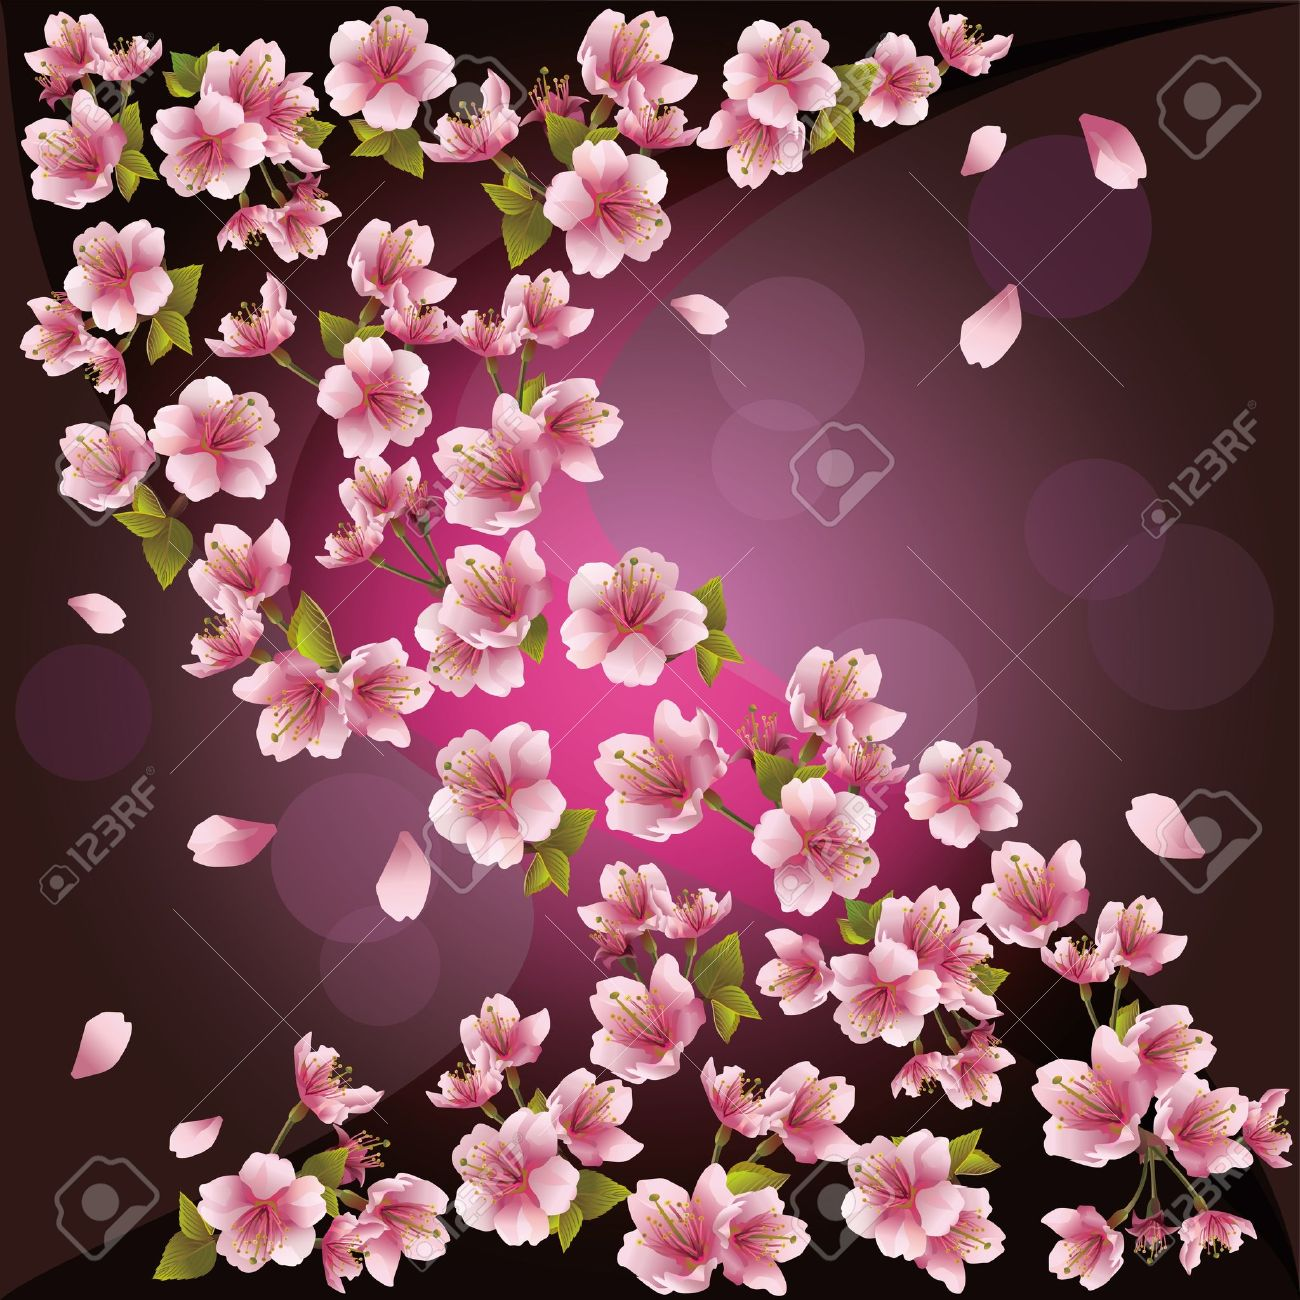 Background with pink sakura blossom - Japanese cherry tree, greeting or invitation card. Stock Vector - 14597529